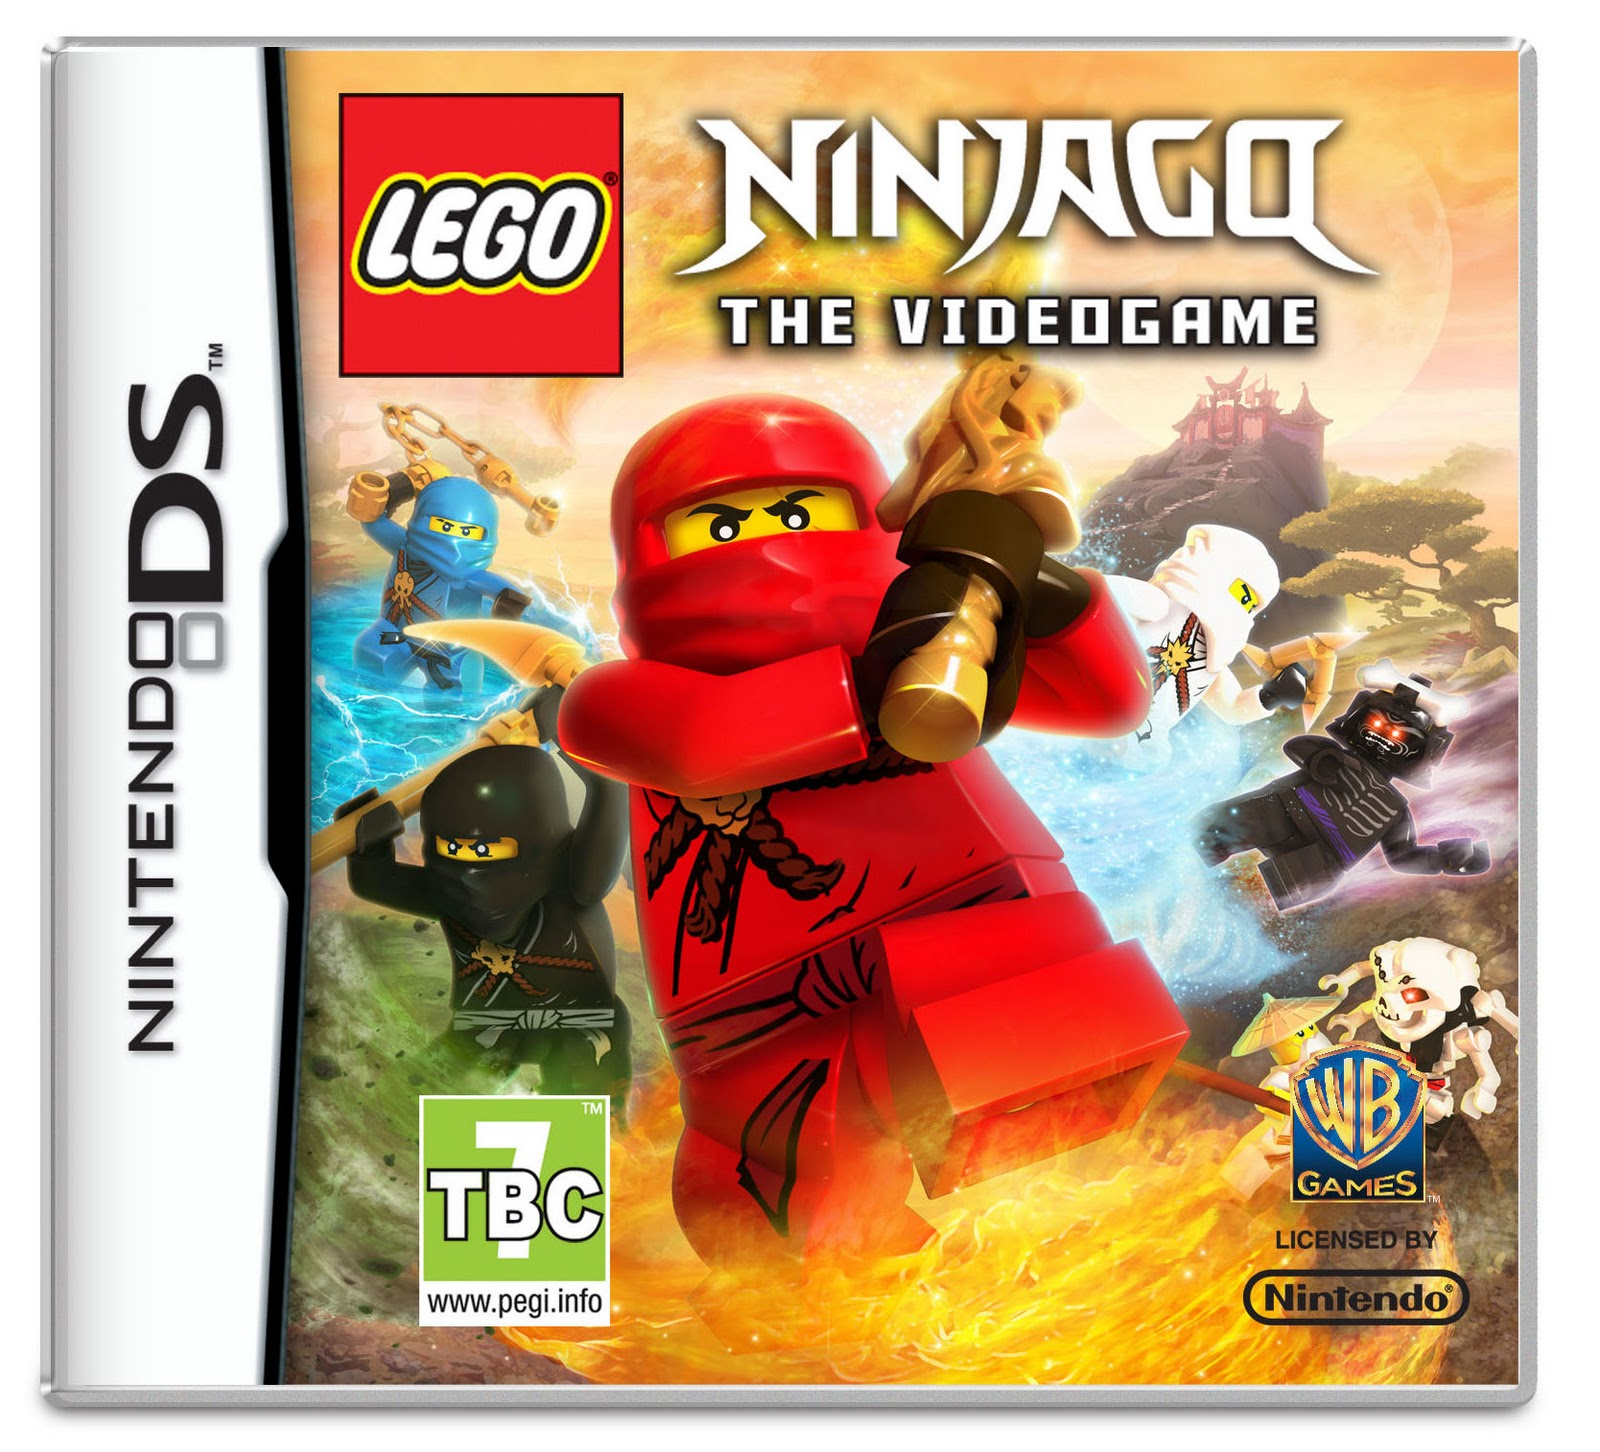 theangryspark lego ninjago the videogame announced for ds